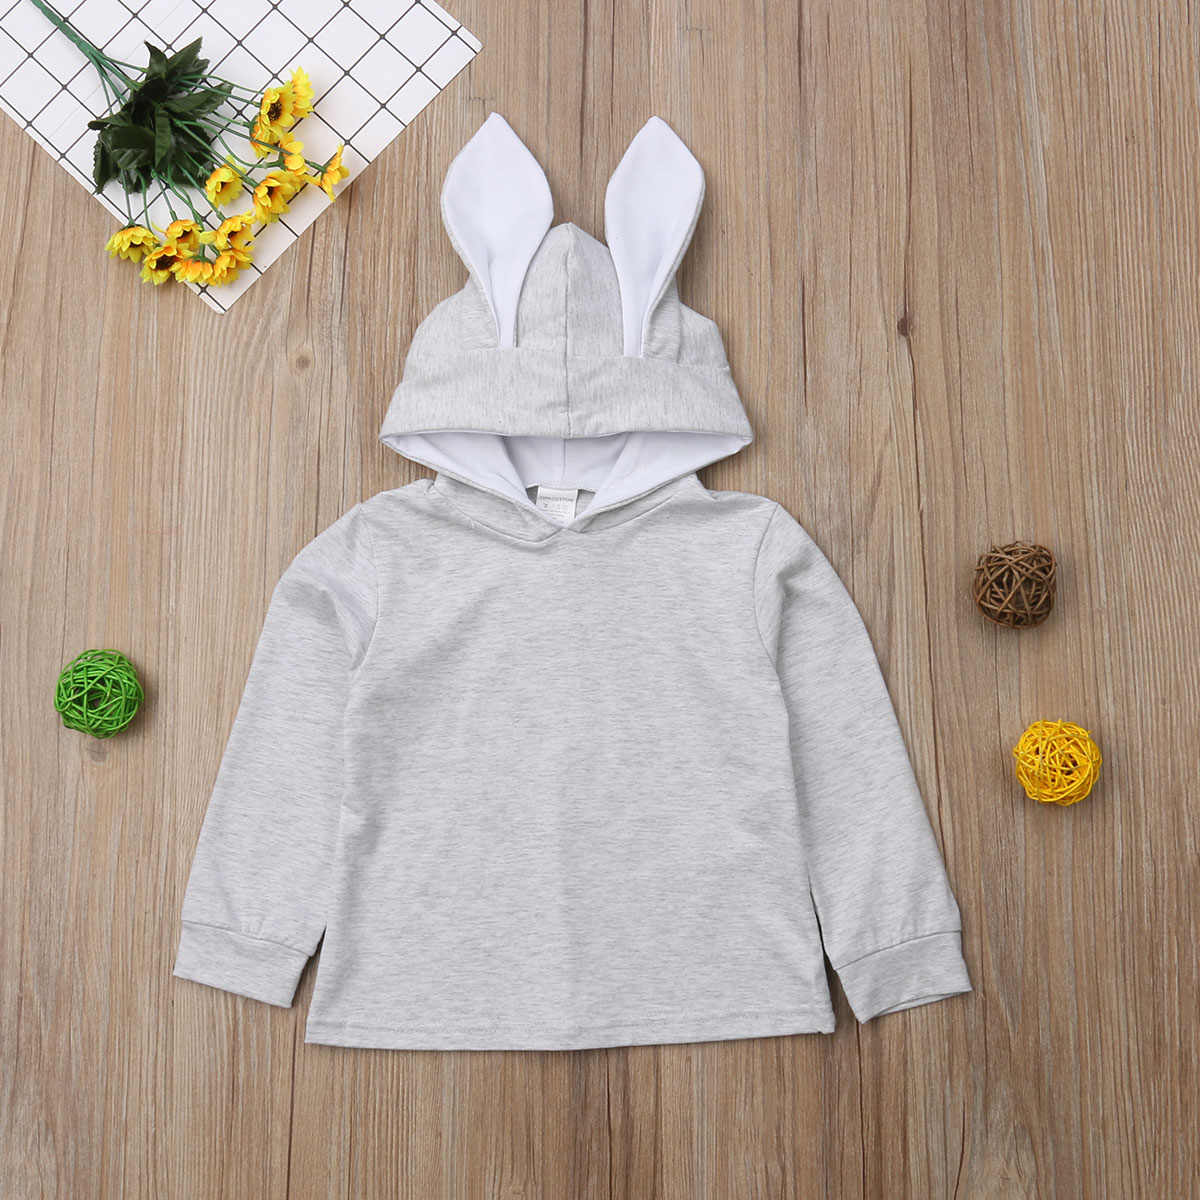 66190b09516e Detail Feedback Questions about Girl Boy Hoodie Coat Tops Warm ...